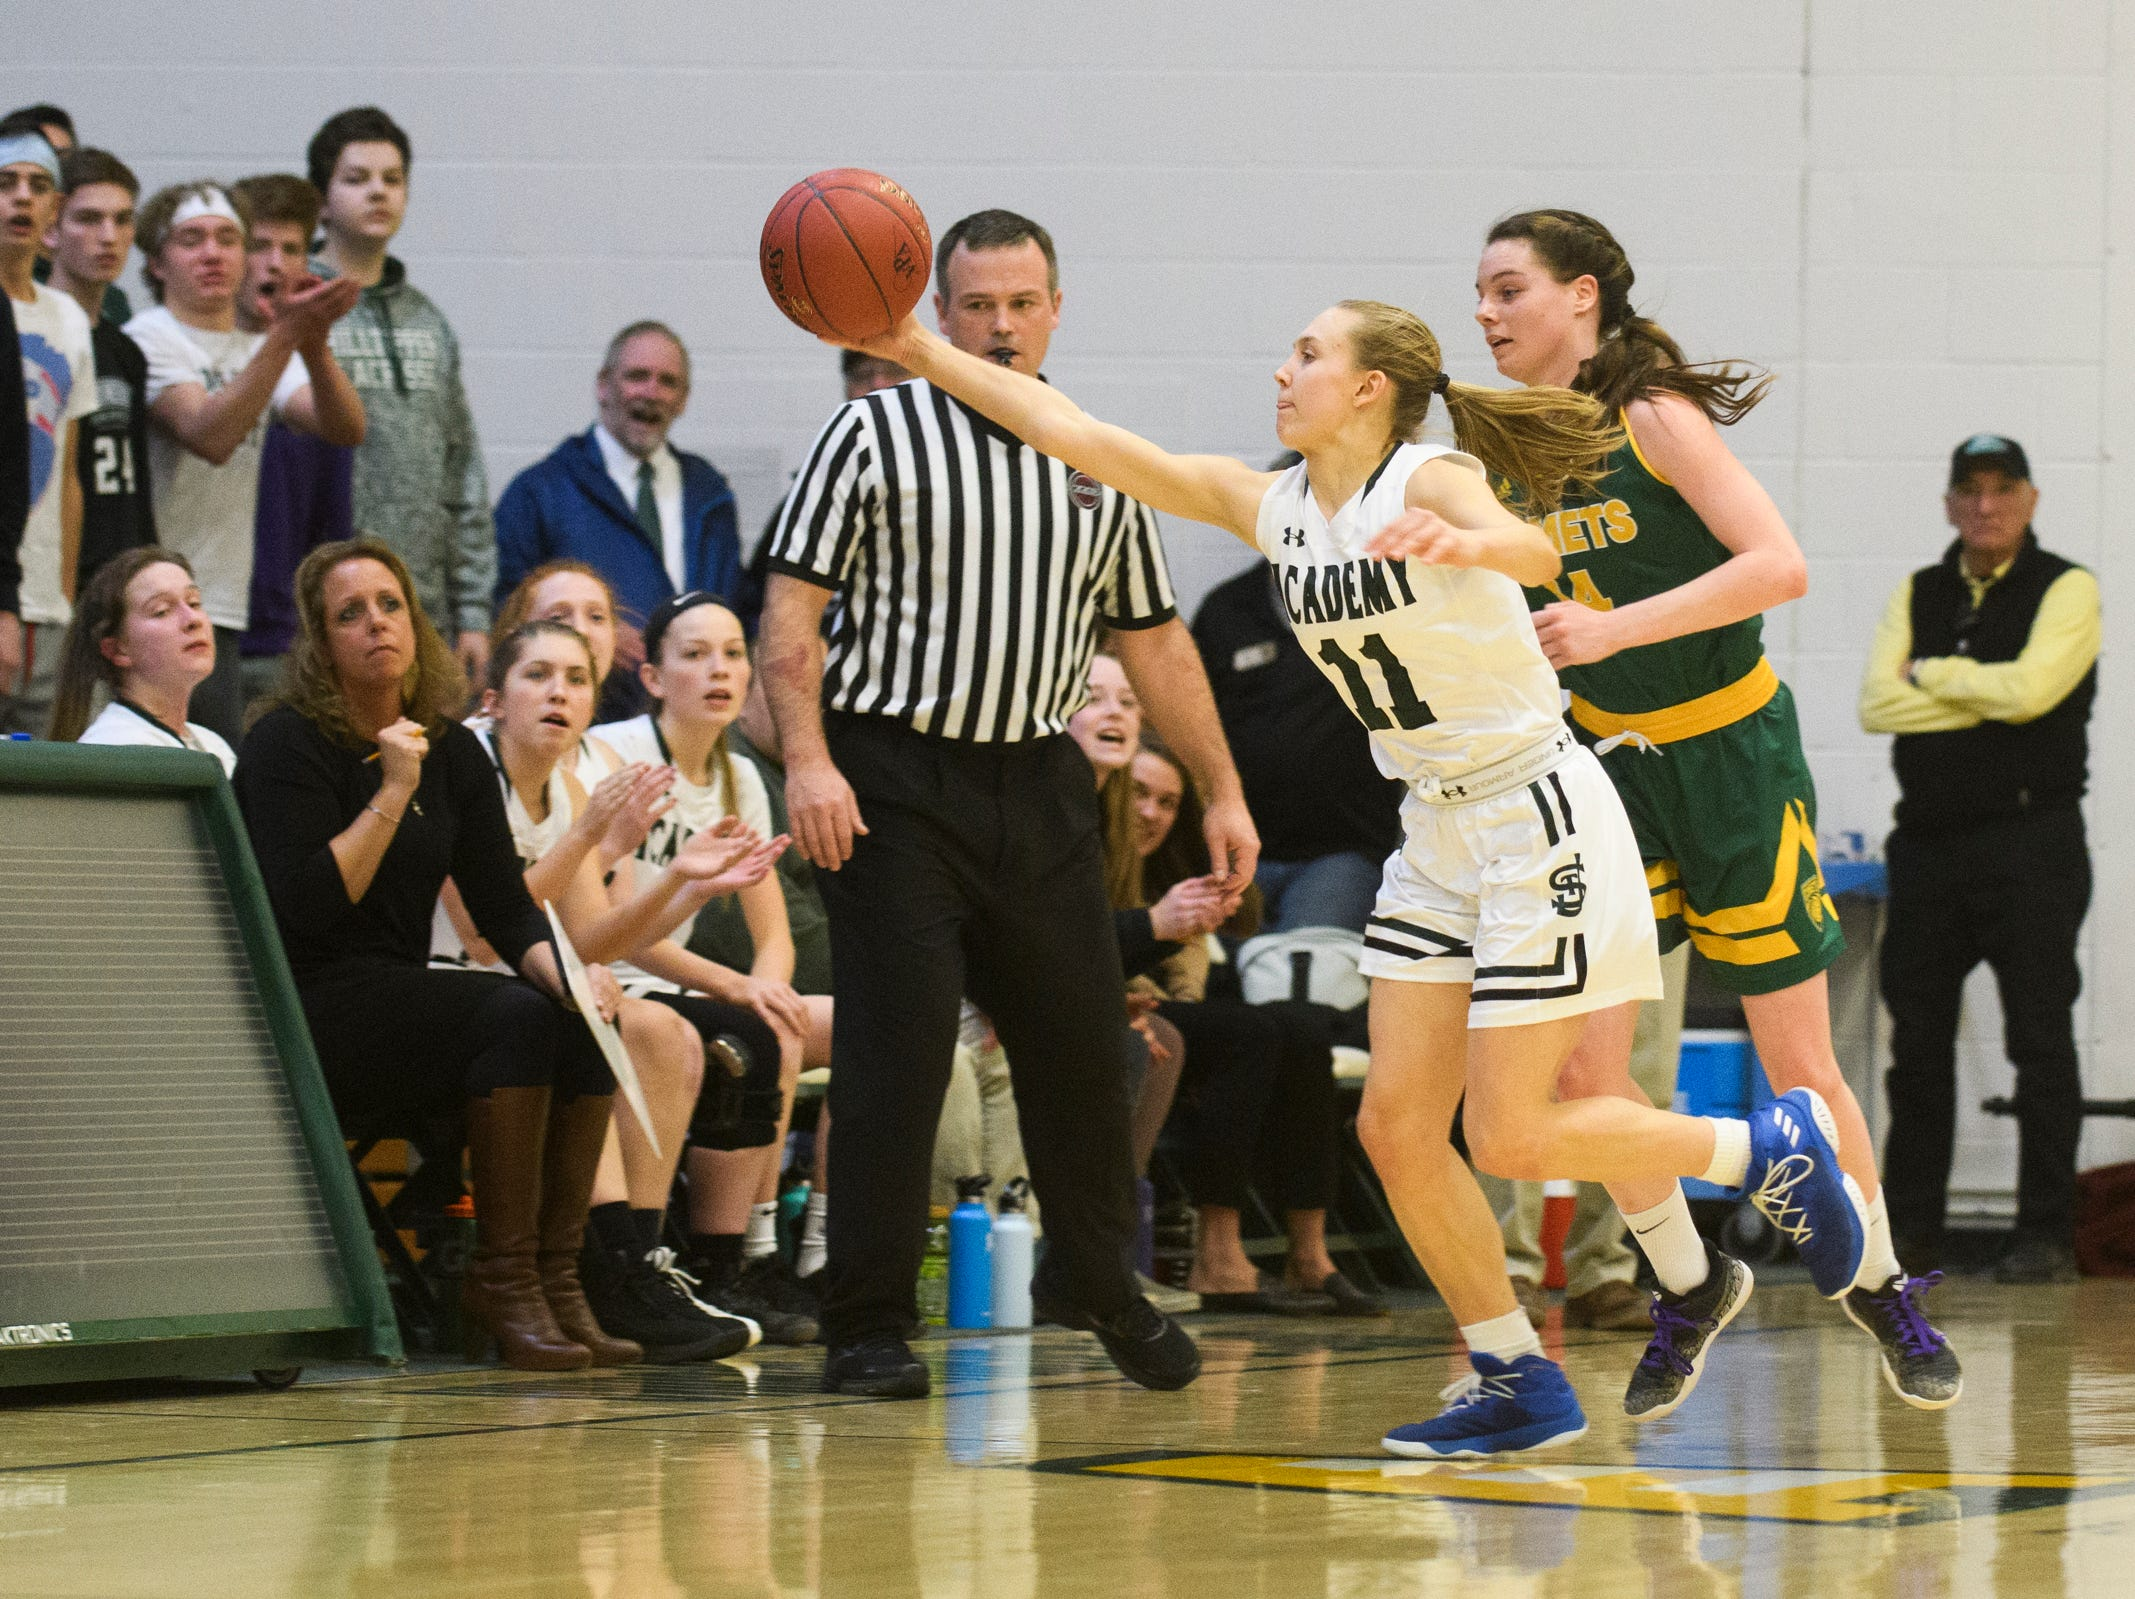 St. Johnsbury's Sydney Huntington-Strohm (11) steals the ball during the girls semifinal basketball game between the BFA St. Albans Comets and the St. Johnsbury Hilltoppers at Patrick Gym on Wednesday night March 6, 2019 in Burlington, Vermont.